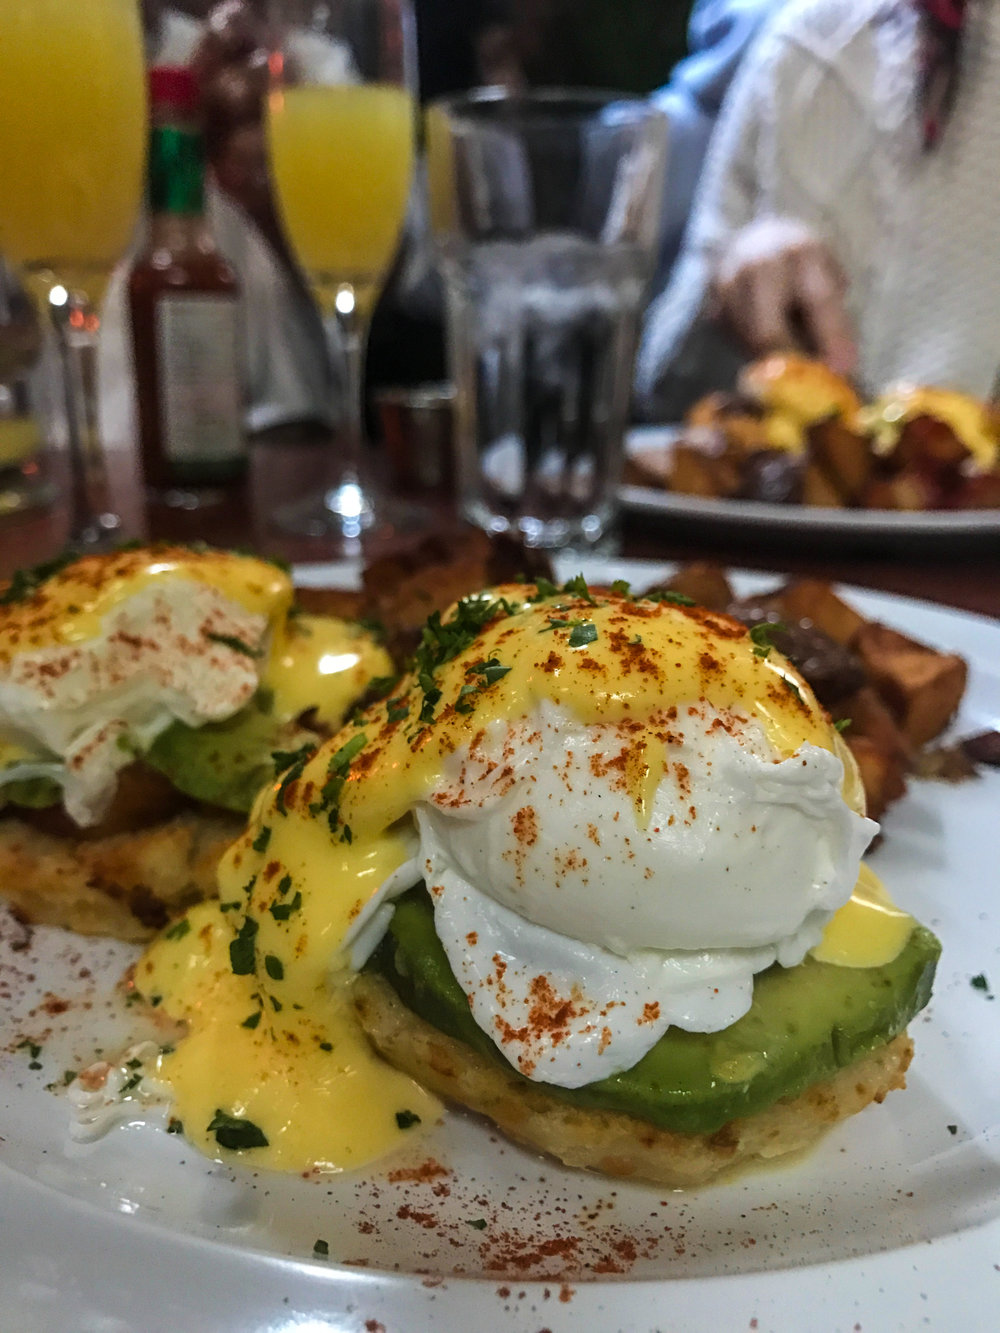 Avocado Benedict from Terra Firma - Poached eggs, crab cake, hollandaise, rosemary potatoes, biscuit, mixed greens.$12.00 for entree - $27.00 for bottomless (90 min. limit)